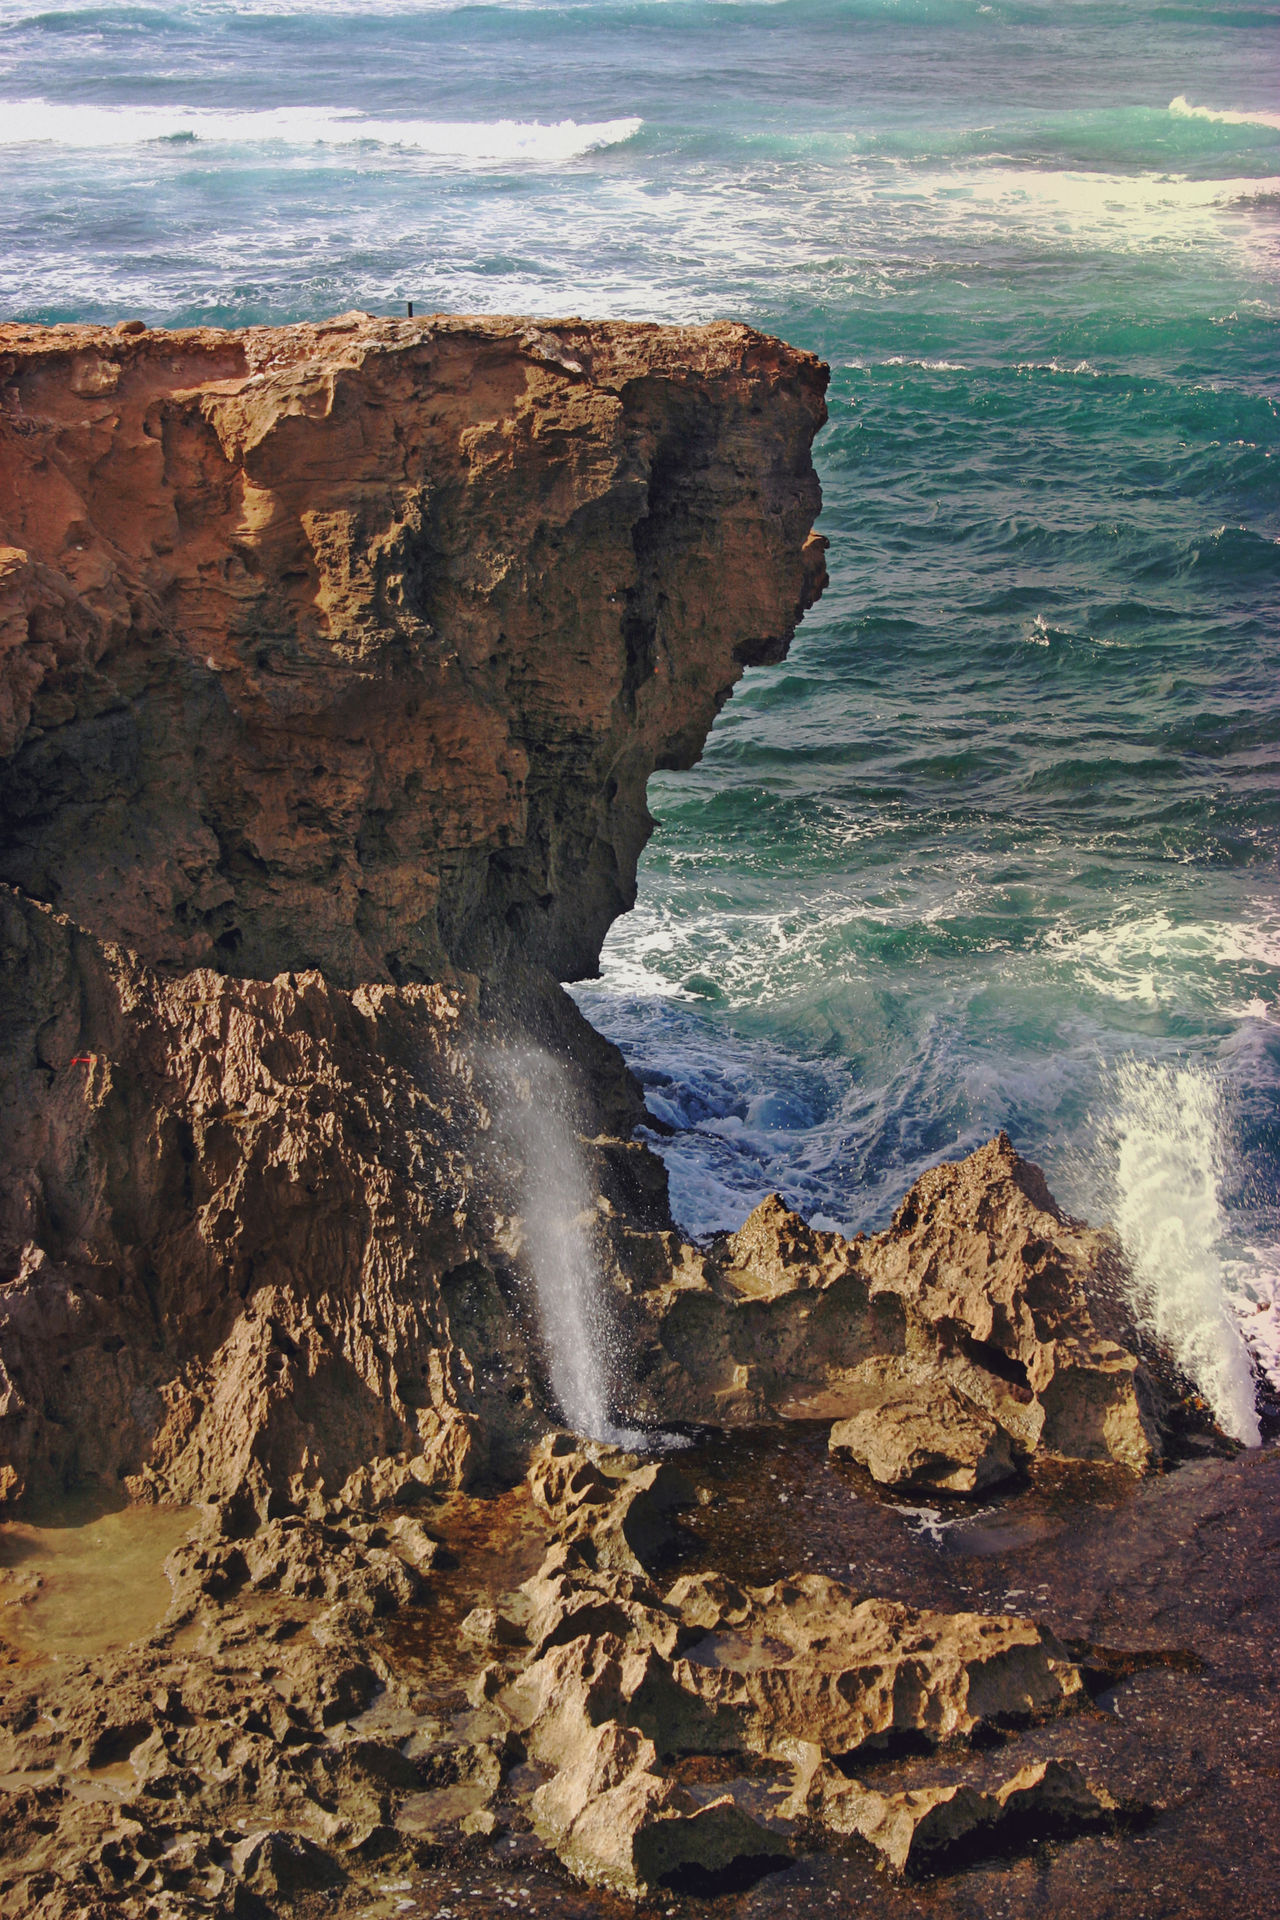 Beach Beauty In Nature Blowhole Cliff Coastline Day Geology Kauai Hawaii Natural Arch Nature No People Outdoors Rock - Object Scenics Sea Solid Wave